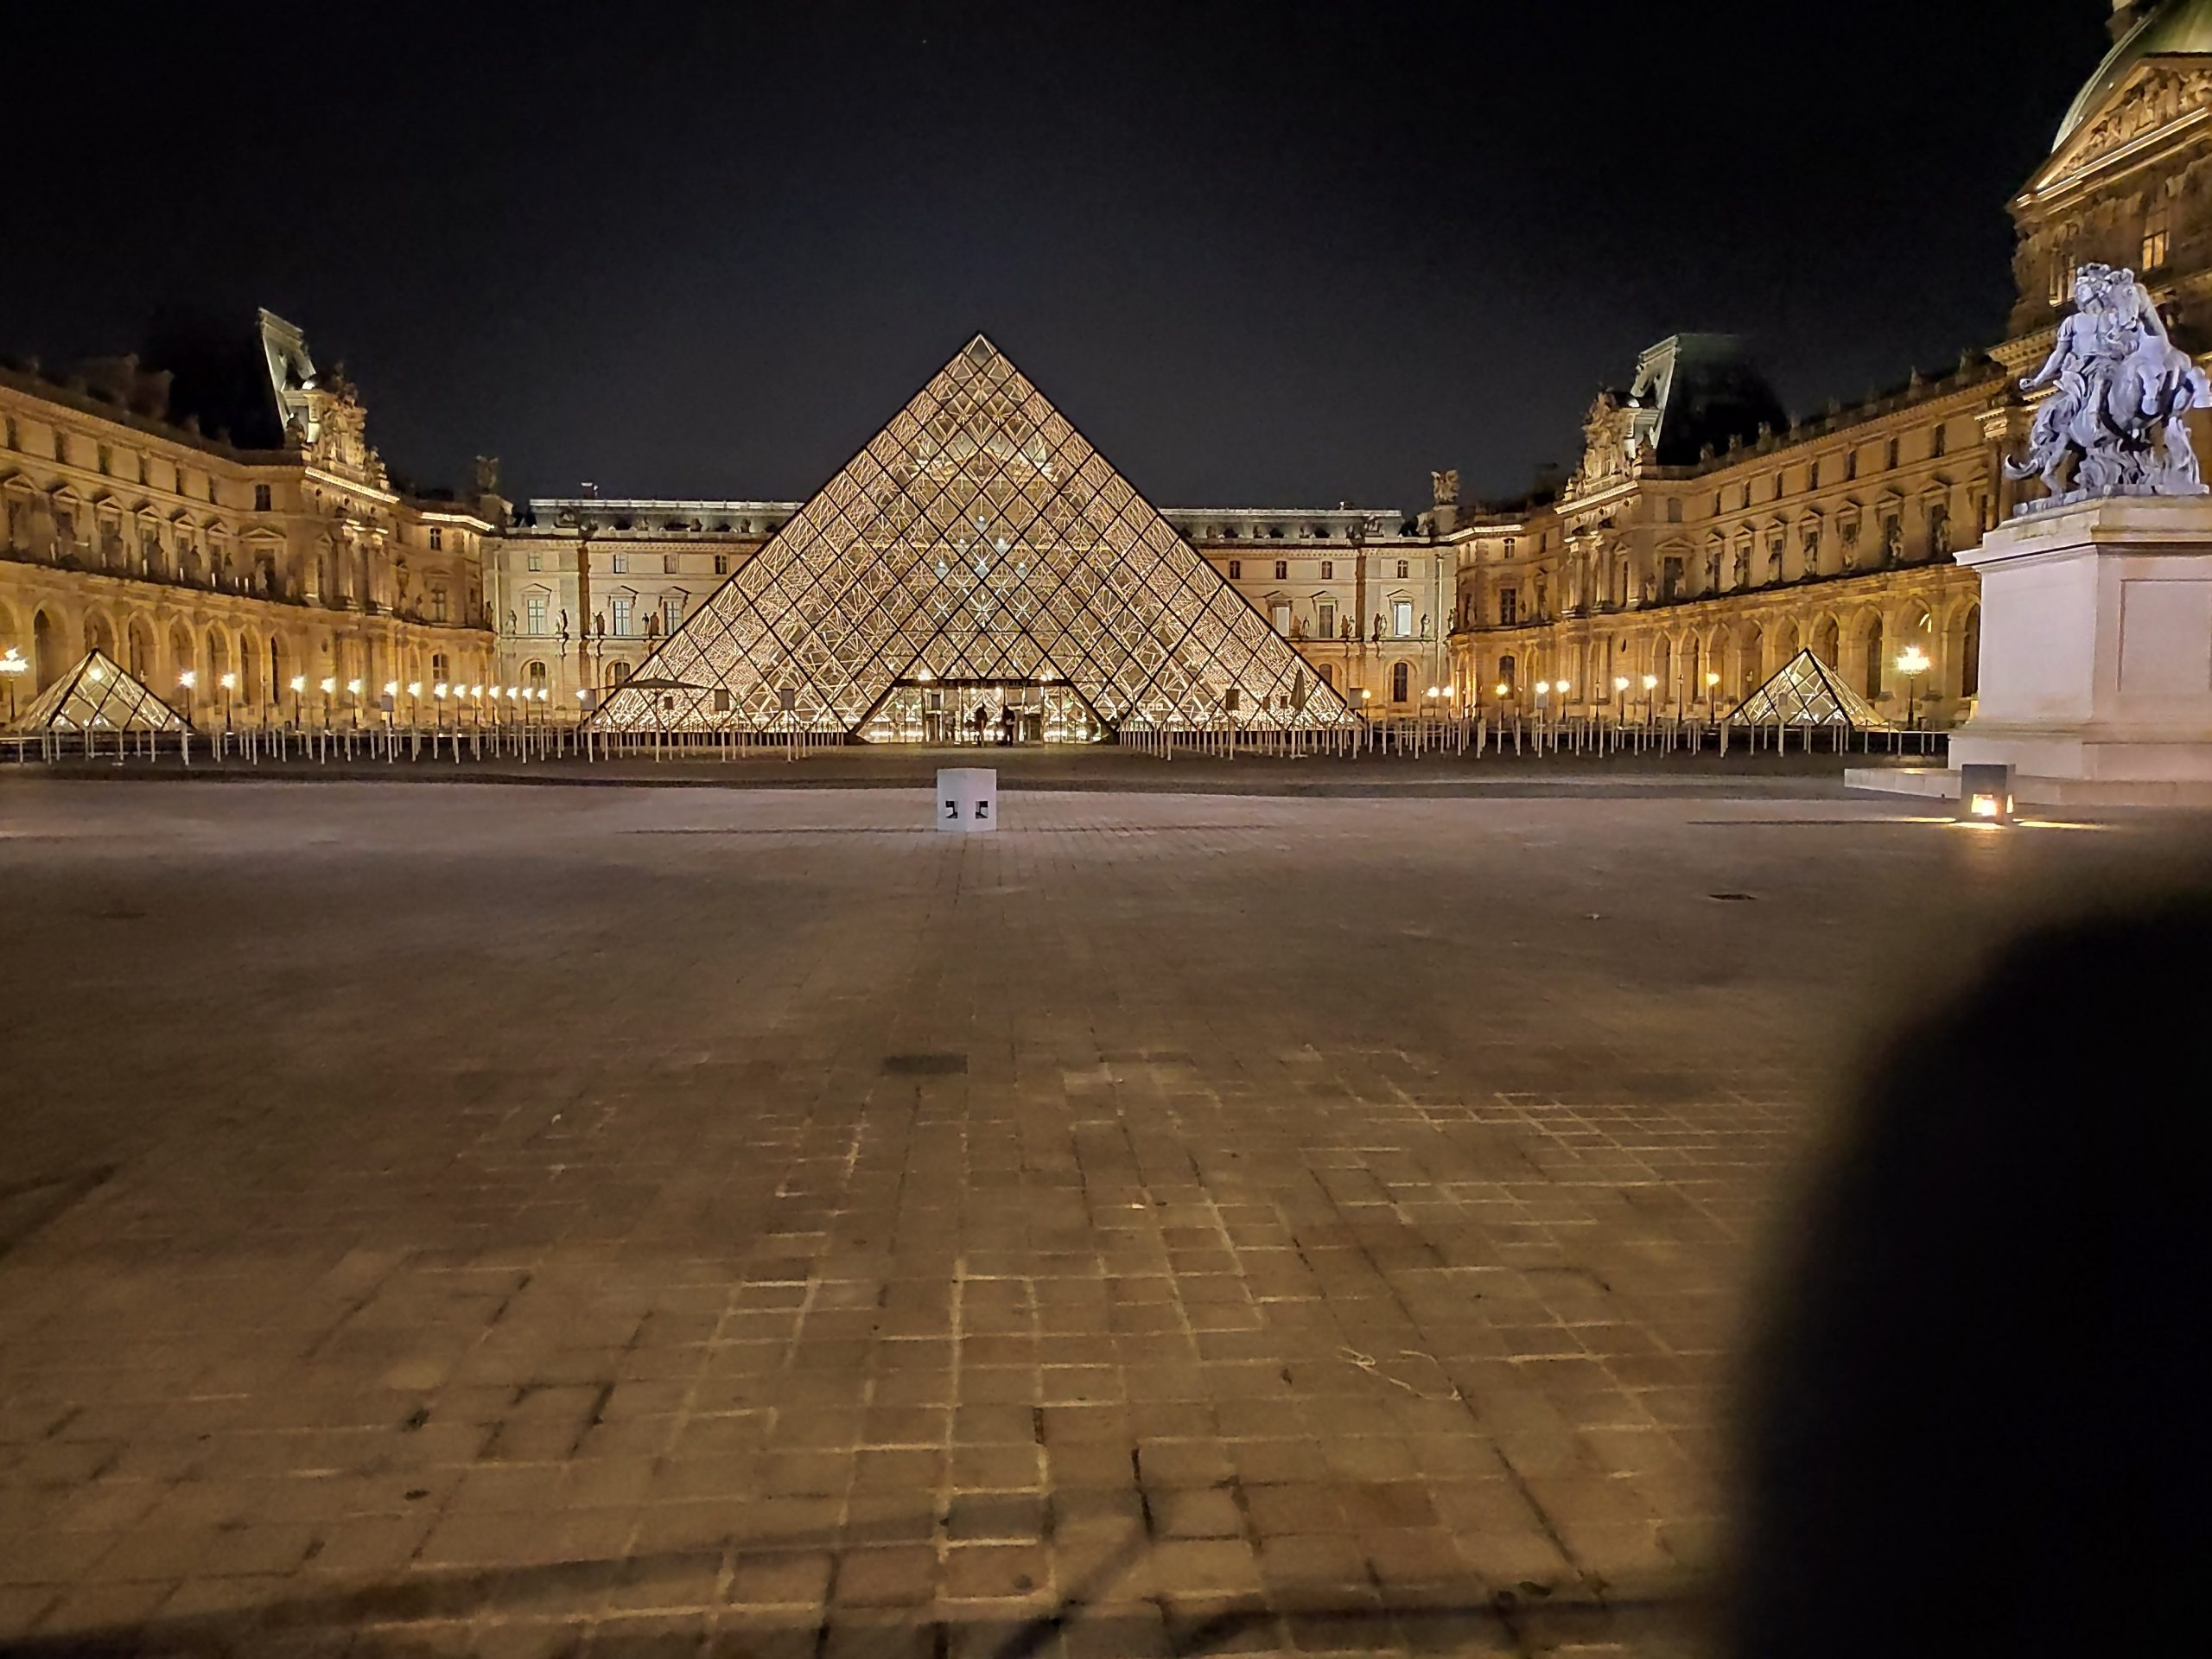 The famous pyramid in front of Louvre